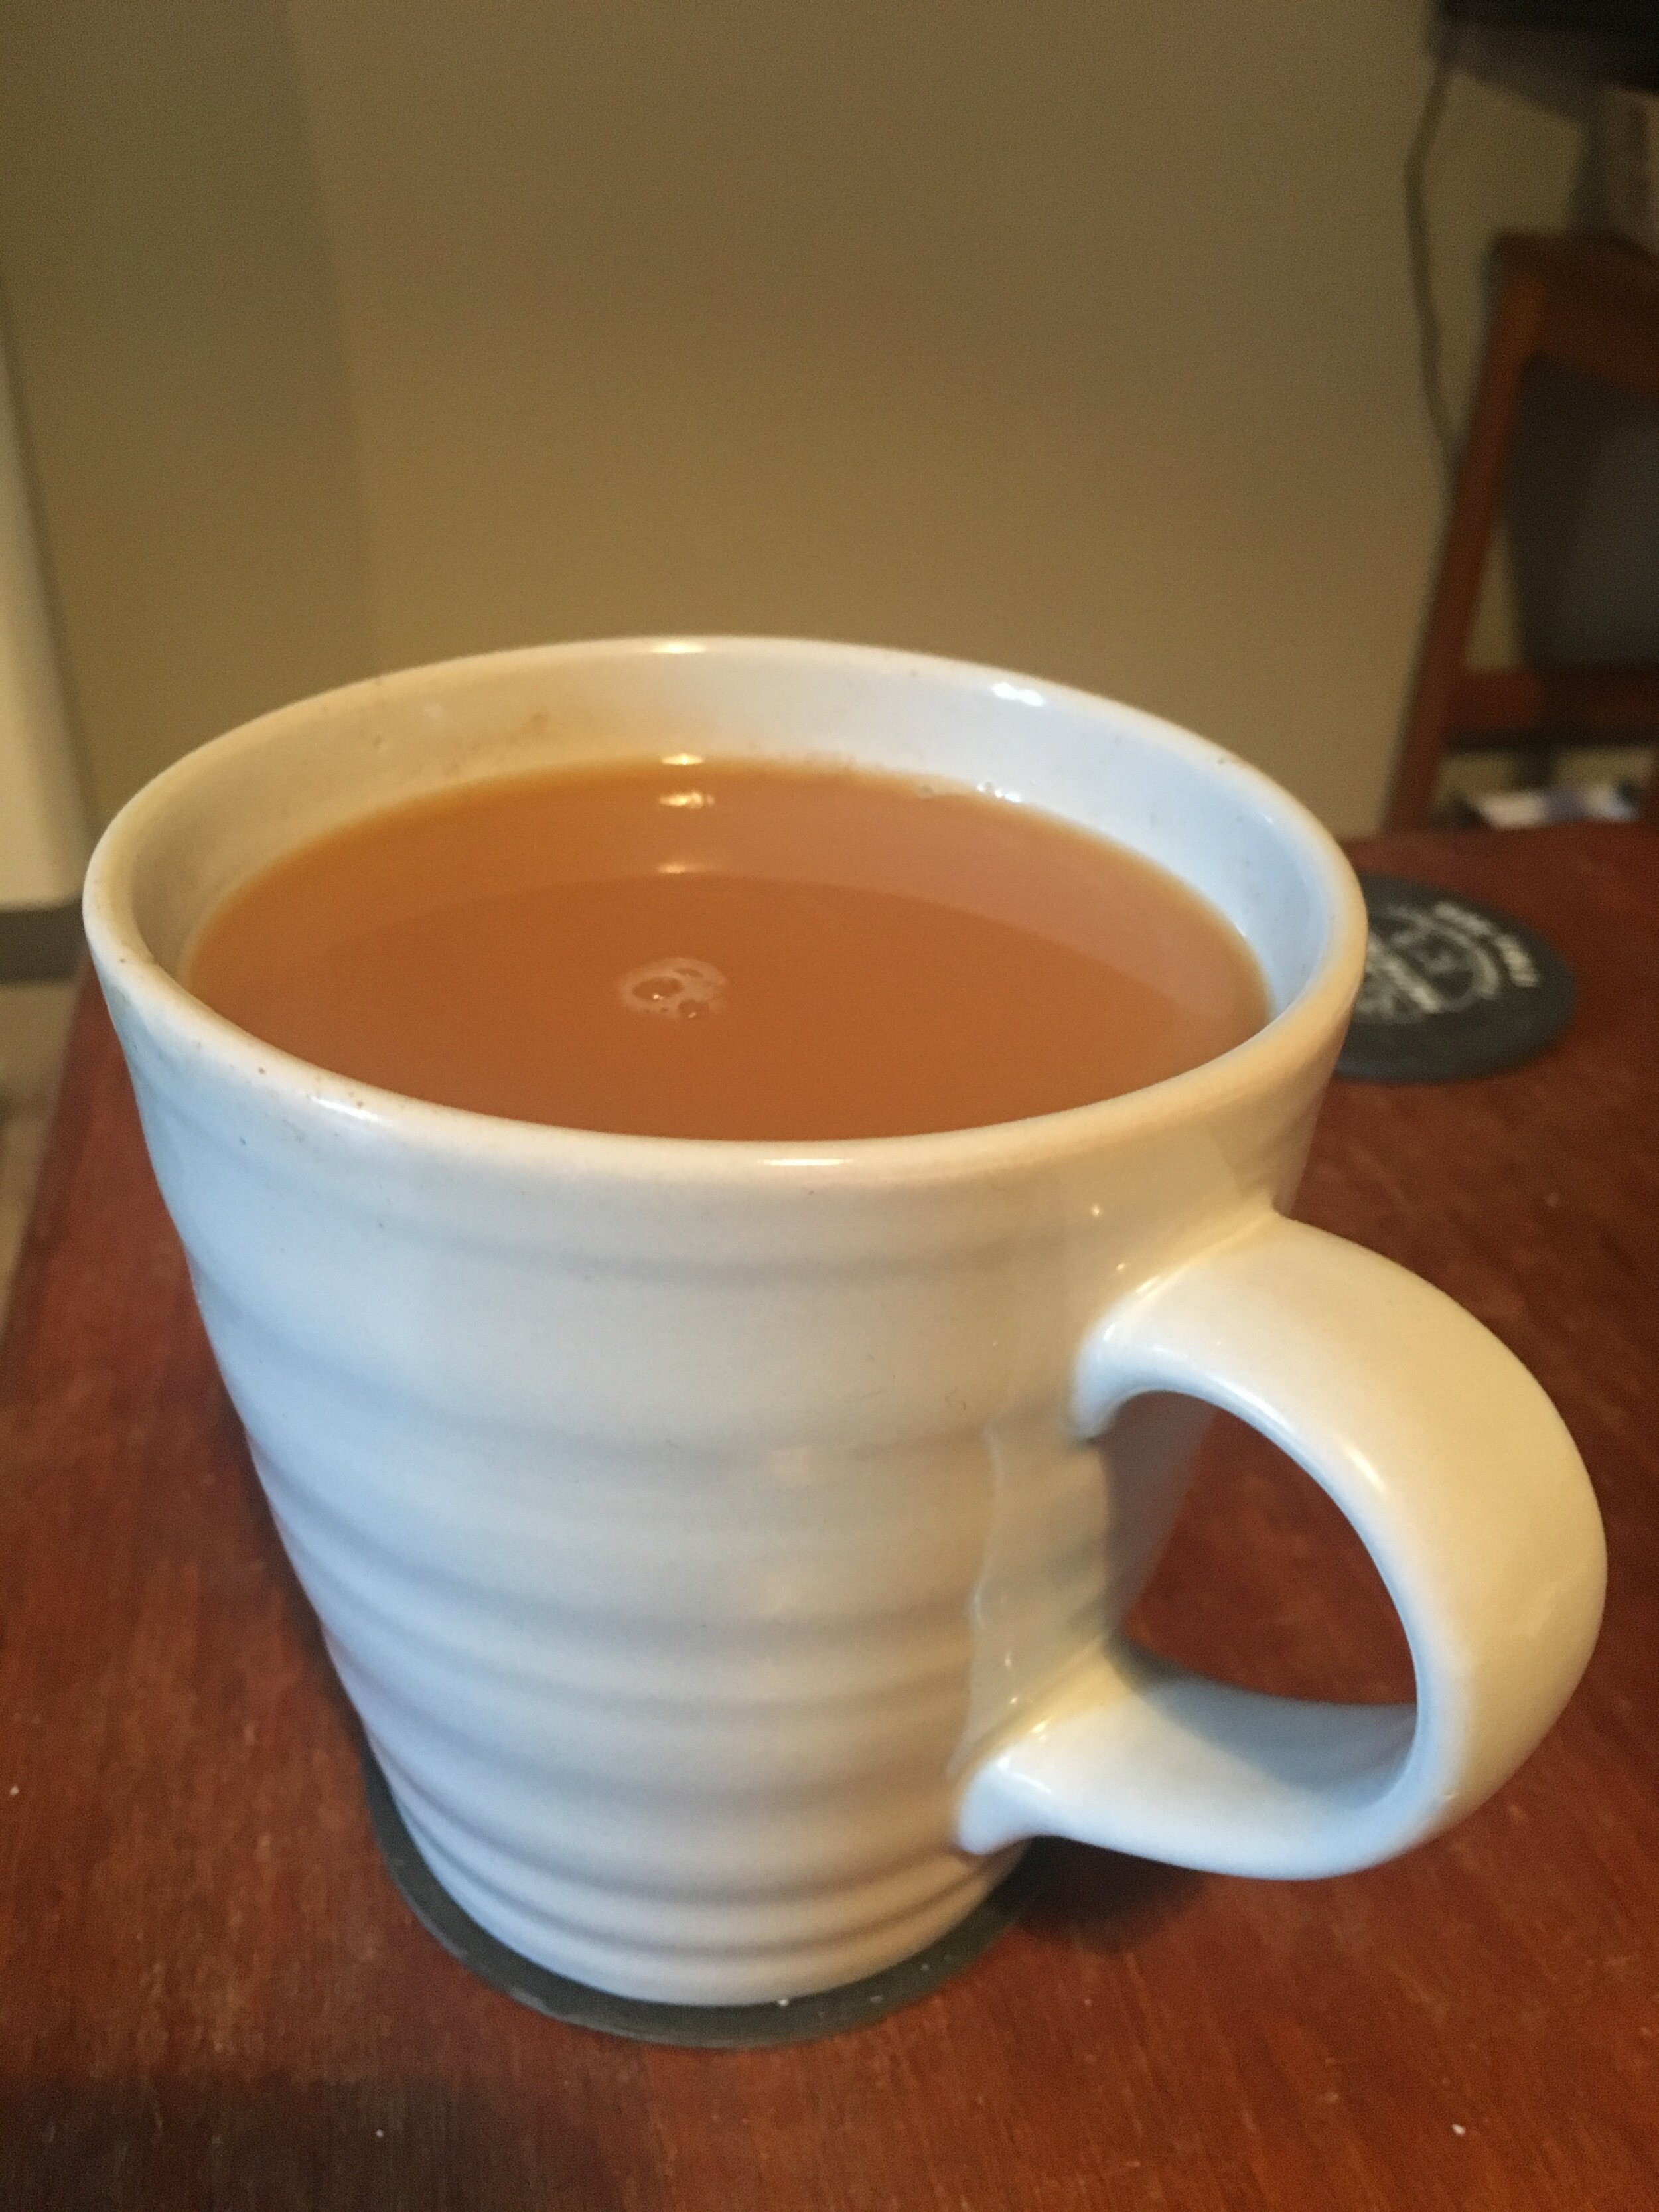 I love a good brew after being out running the cold!